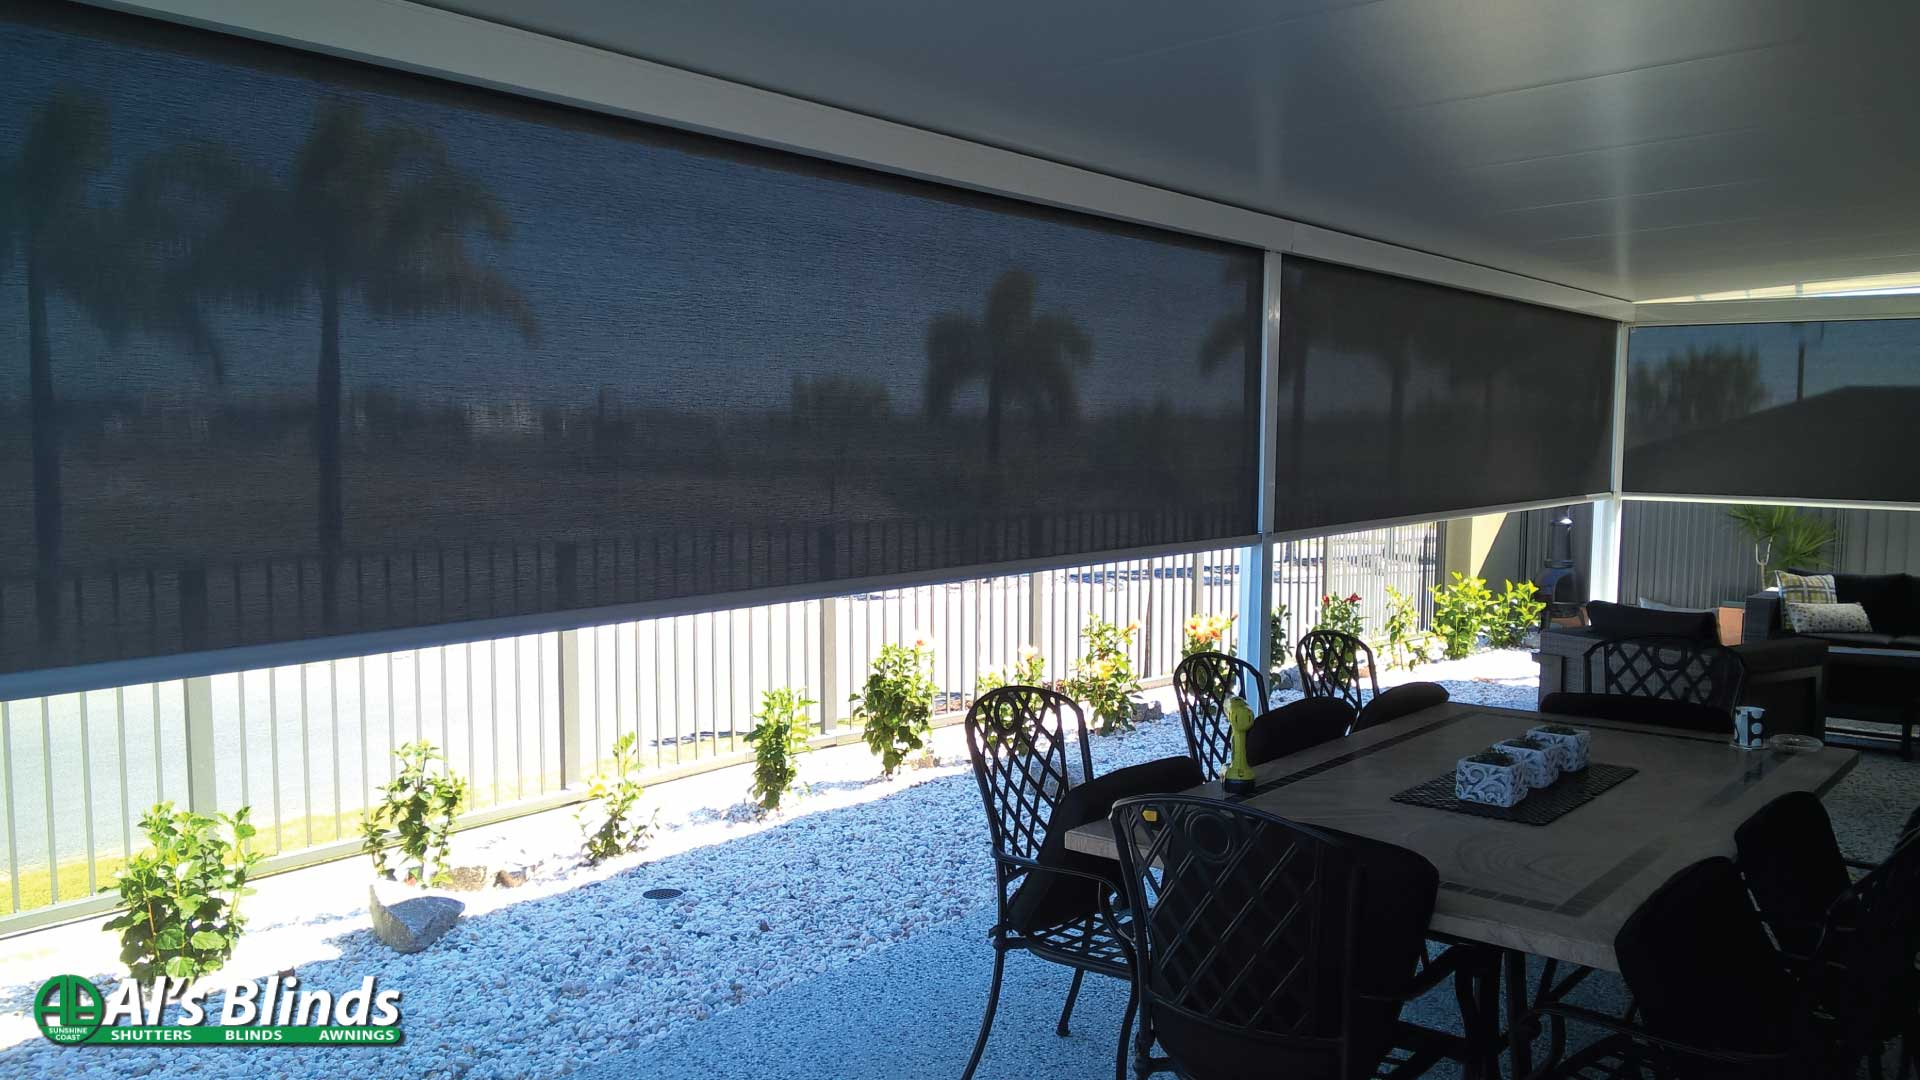 Channel Awnings with Block out Fabric